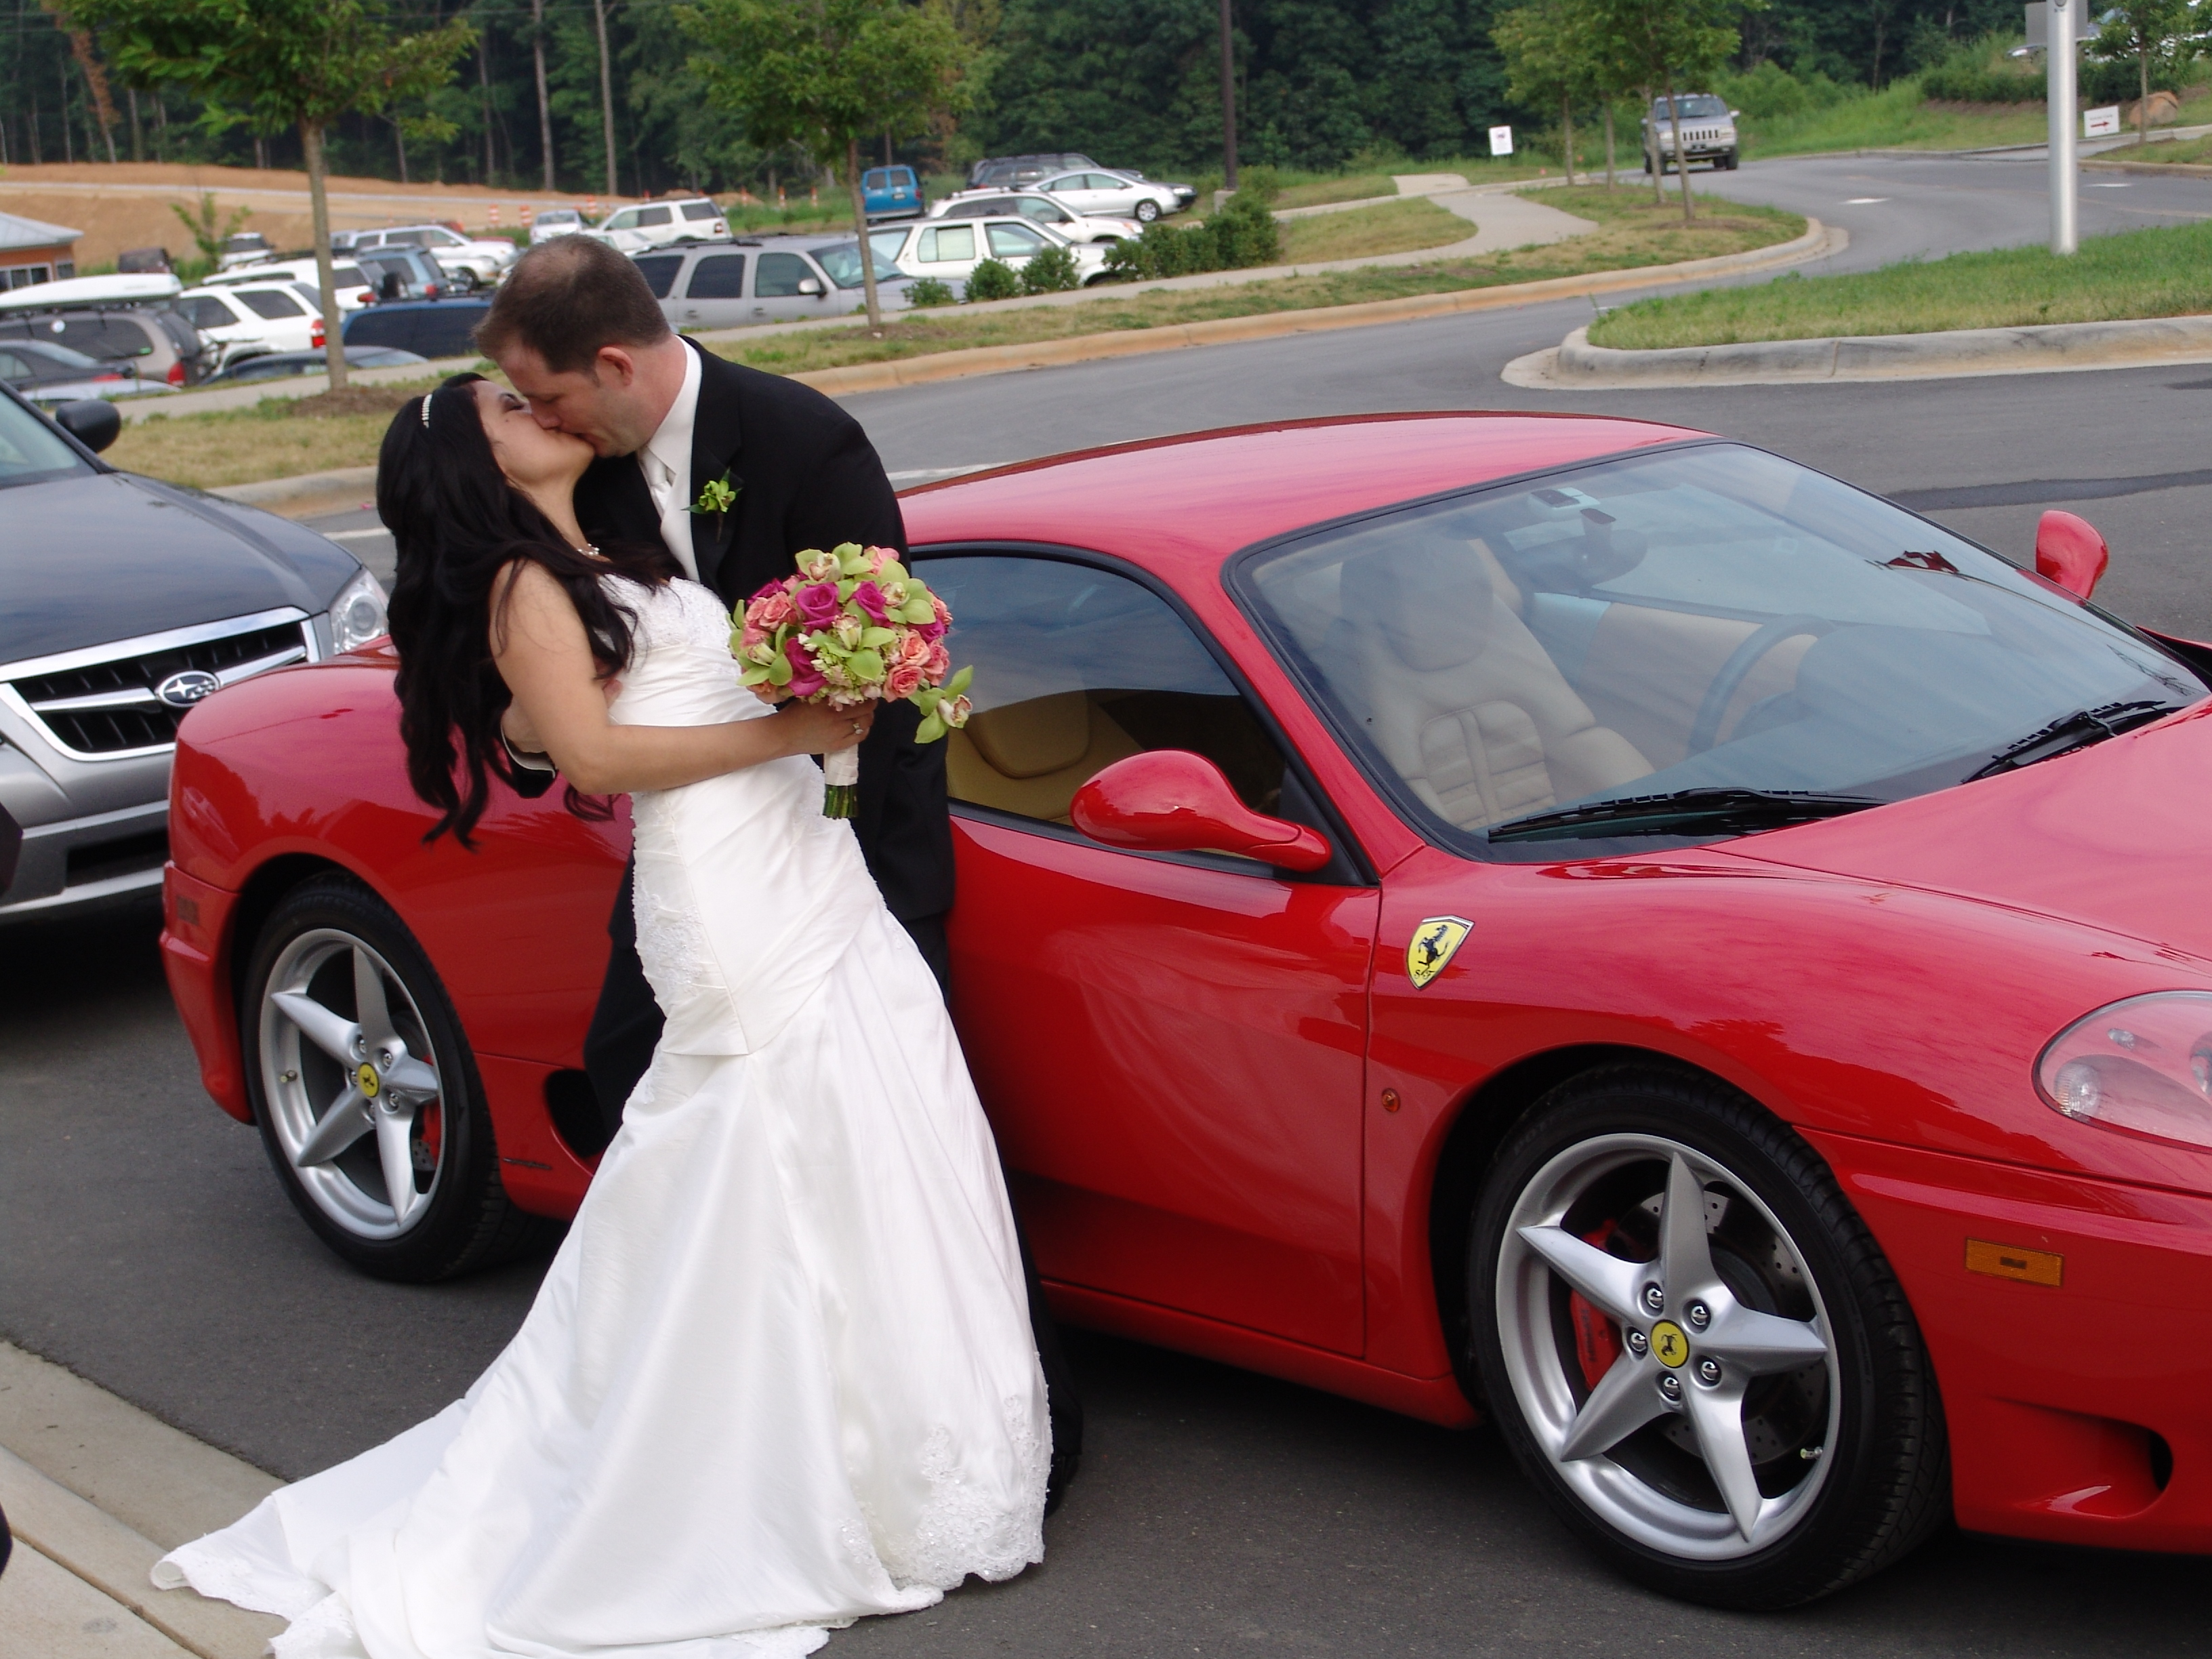 Limo, Best, Limos, Ghusa executive luxury limousine transportation, Ferrari